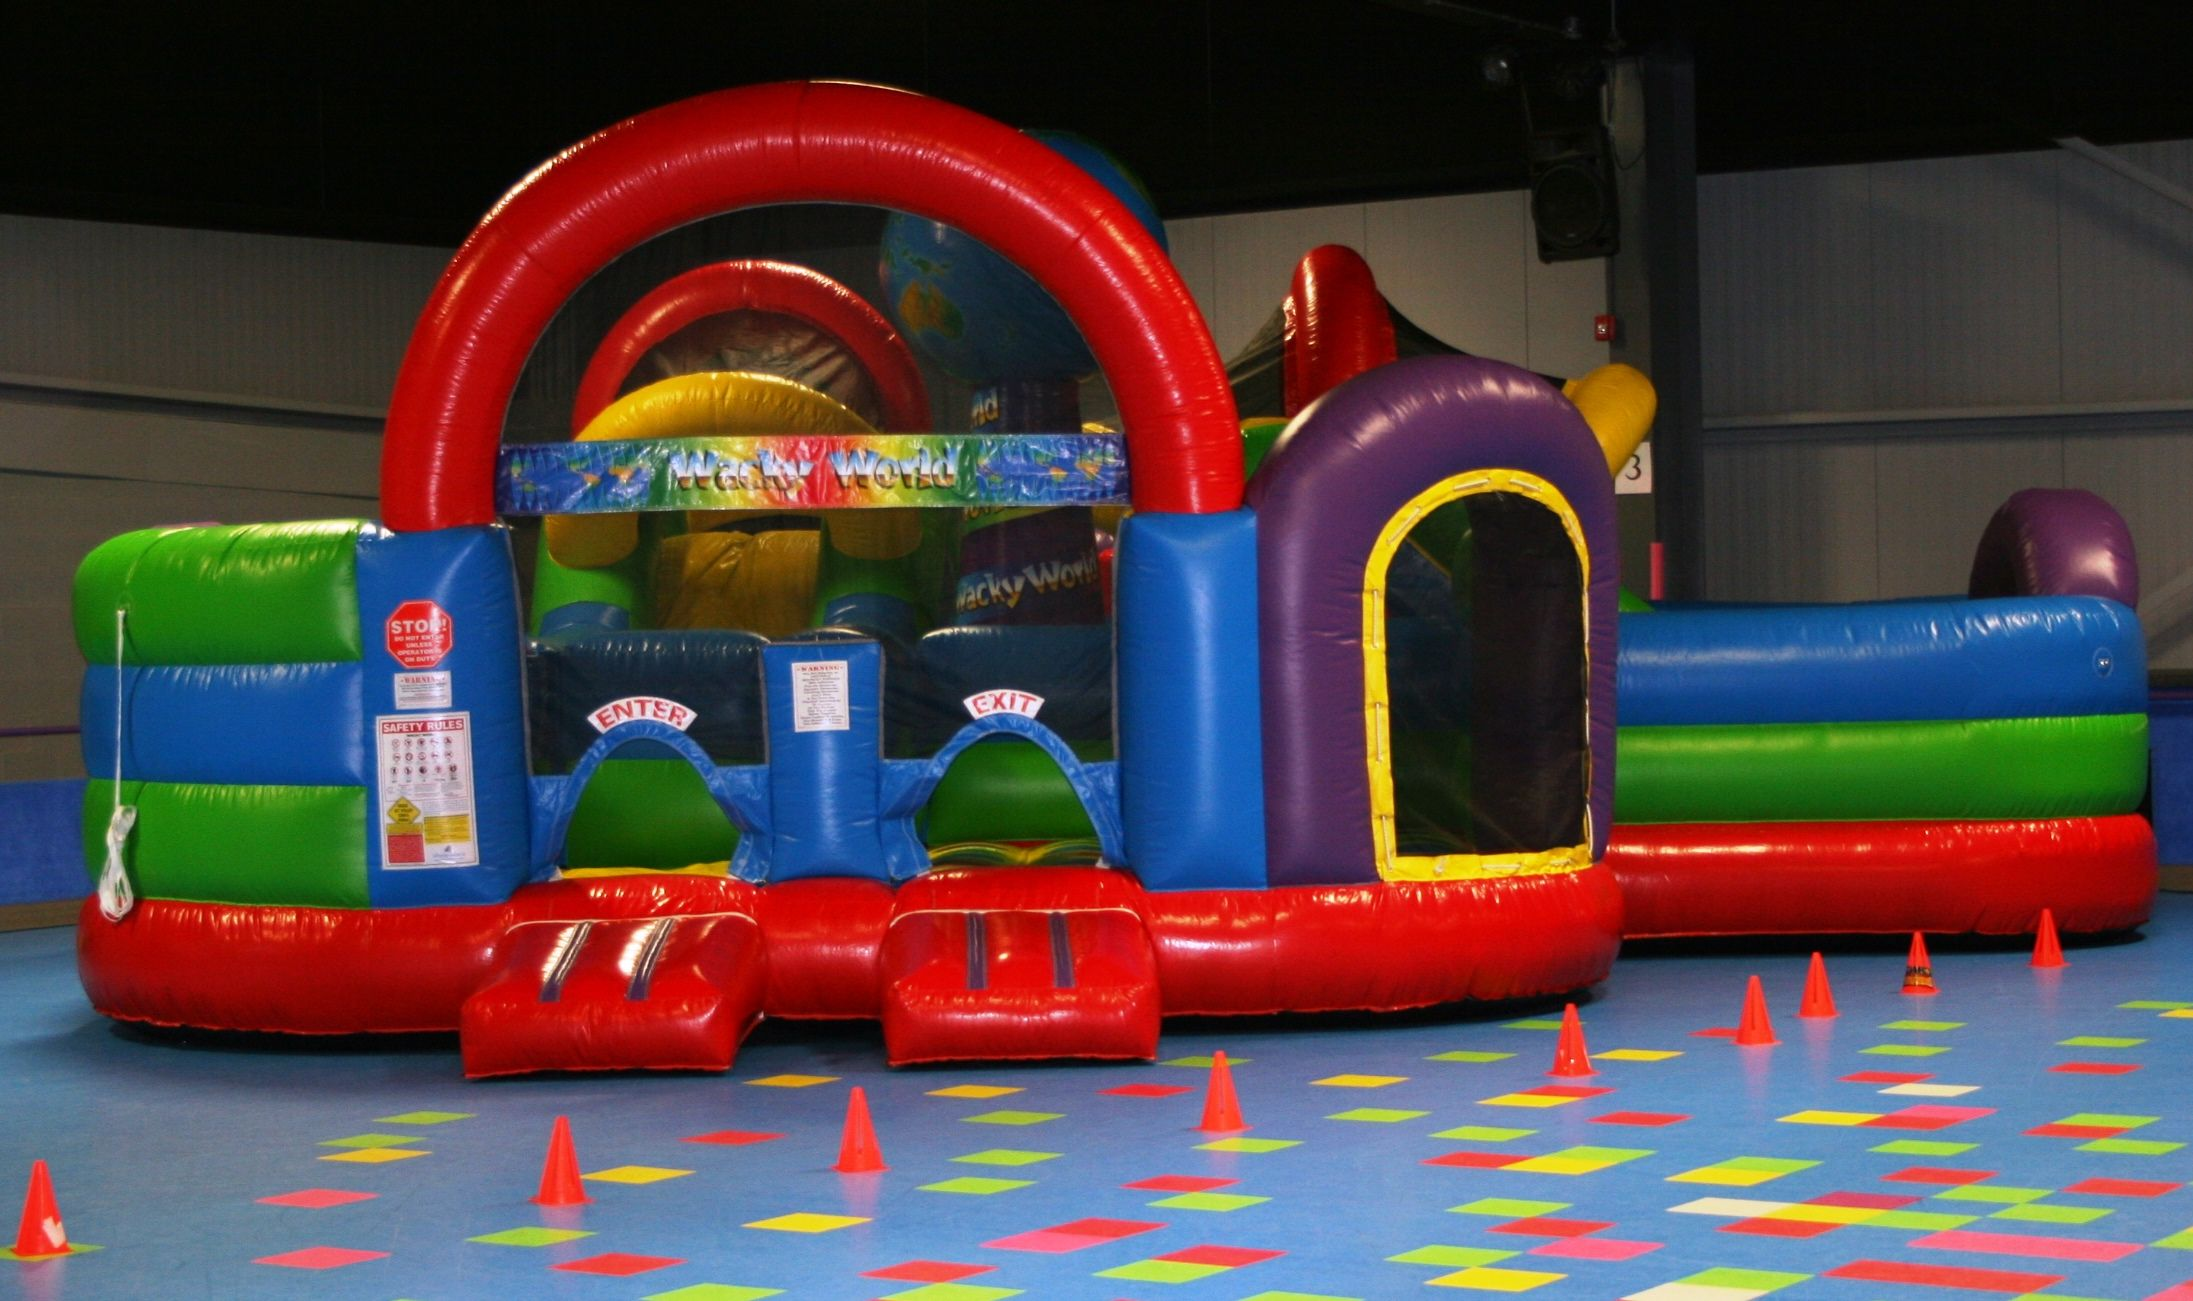 Activity Bounce Birthday Parties At The Castle Fun Center In Chester NY Hudson Valley Orange County New York Amusement Park Thecastlefuncenter